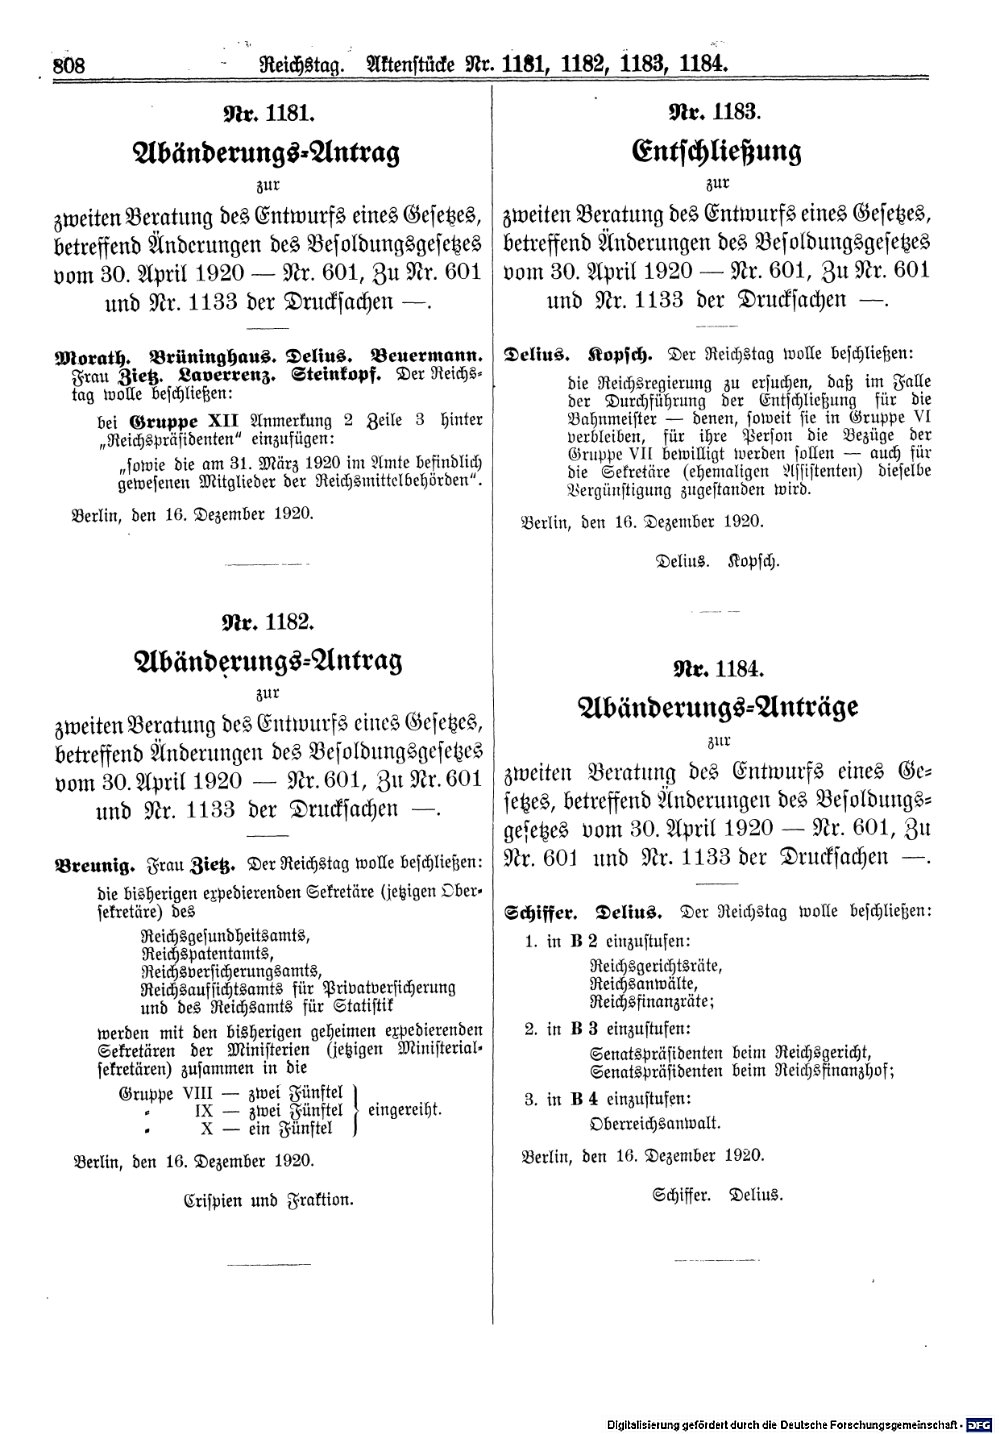 Scan of page 808